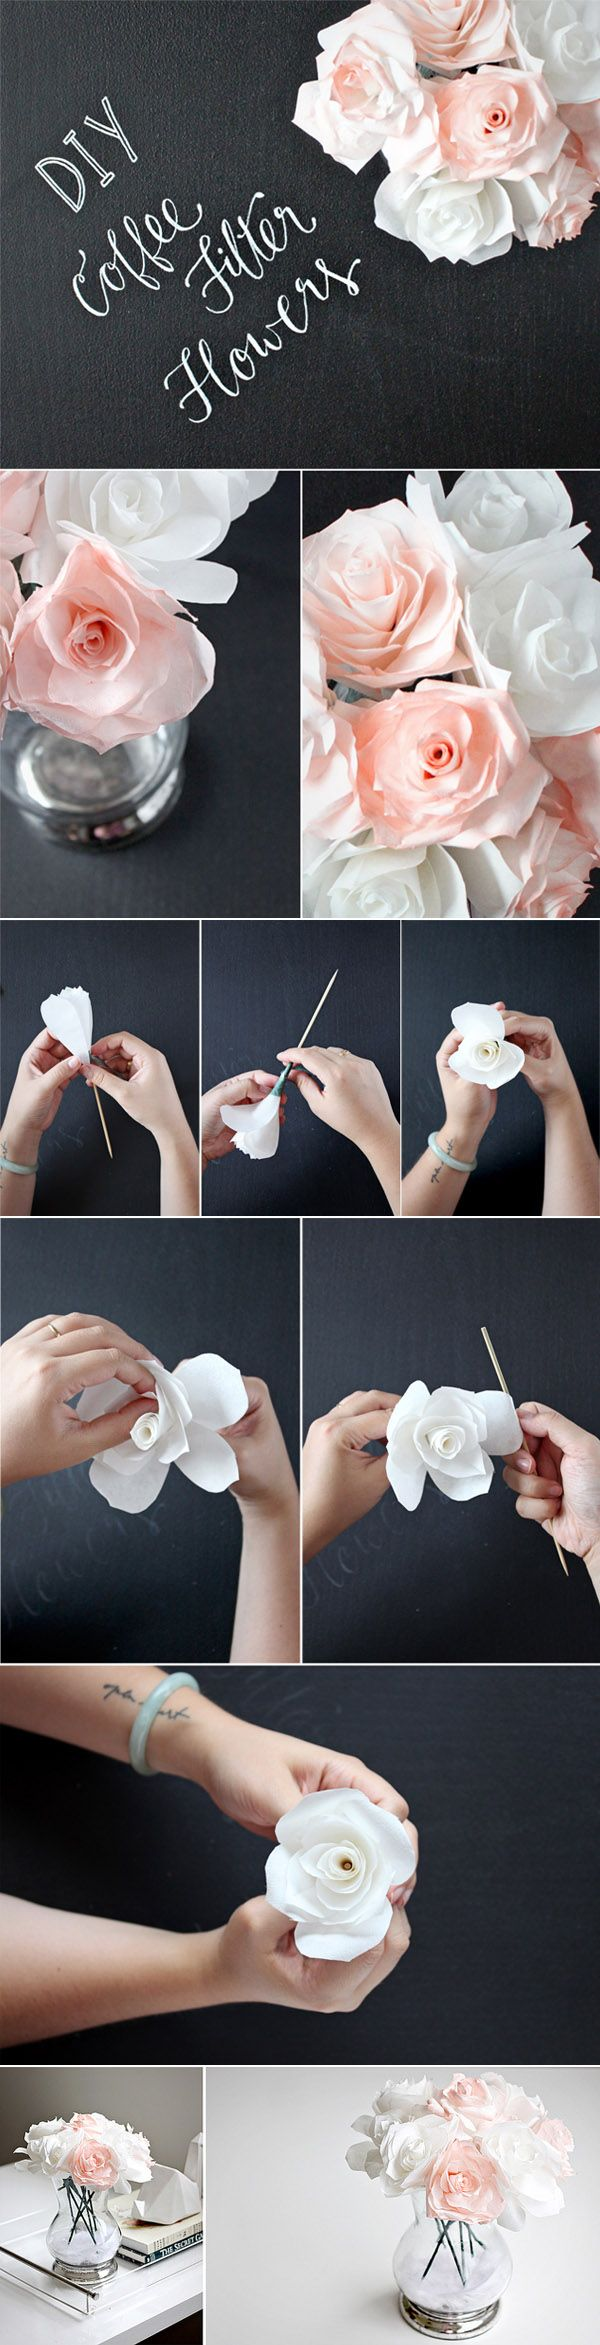 Best 25 paper flowers wedding ideas on pinterest paper flowers 10 creative diy wedding centerpieces with tutorials dhlflorist Choice Image